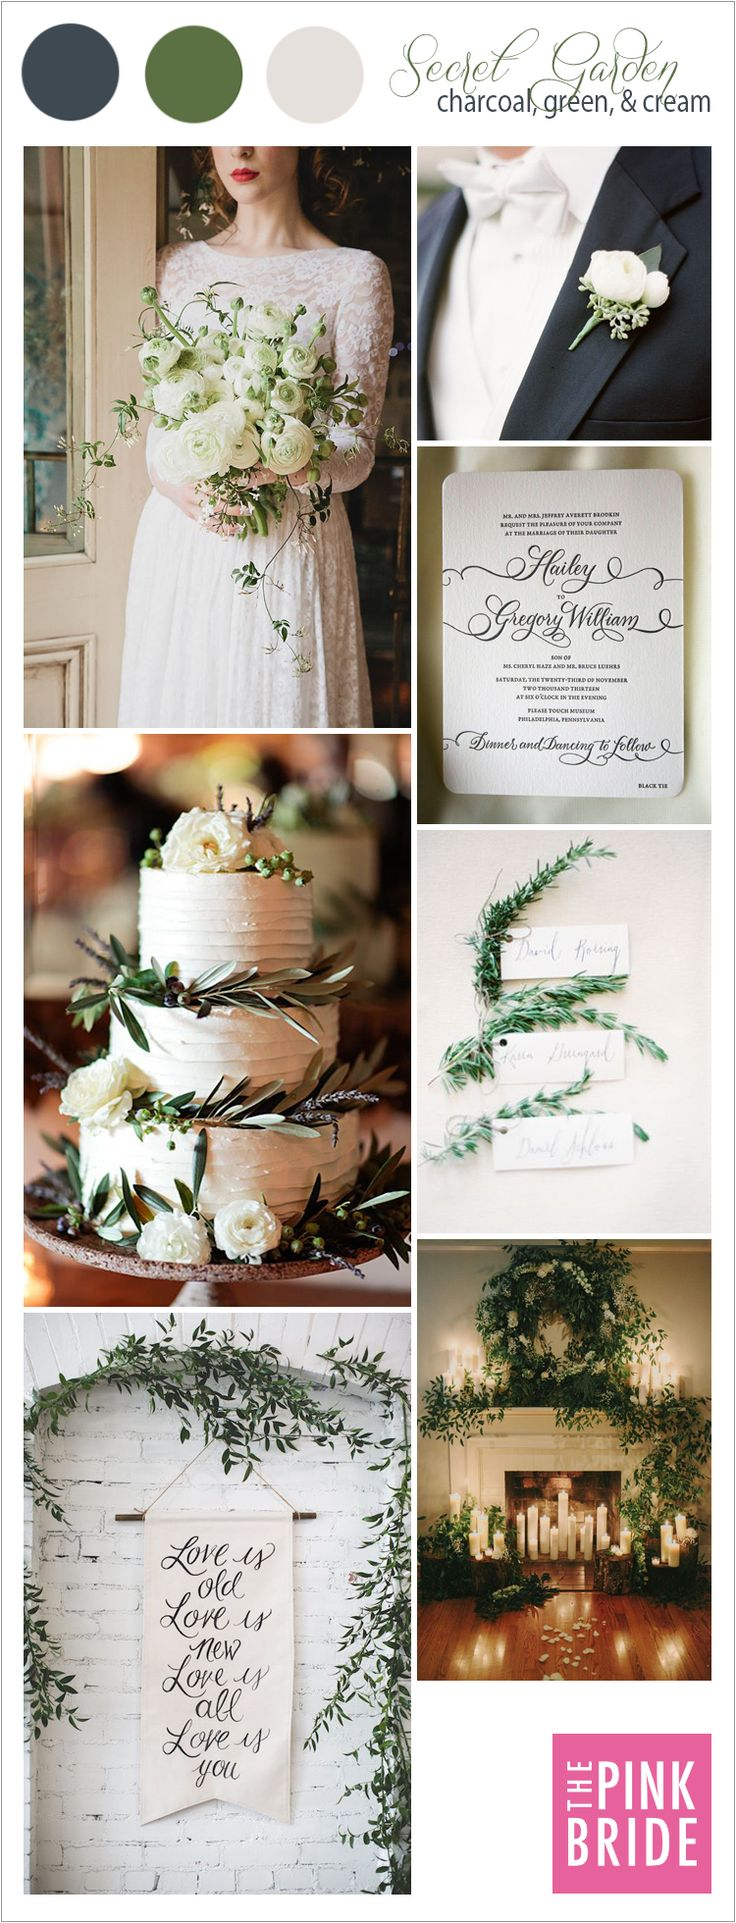 Secret Garden wedding color palette inspiration board with green, cream, and charcoal wedding details | The Pink Bride® www.thepinkbride.com